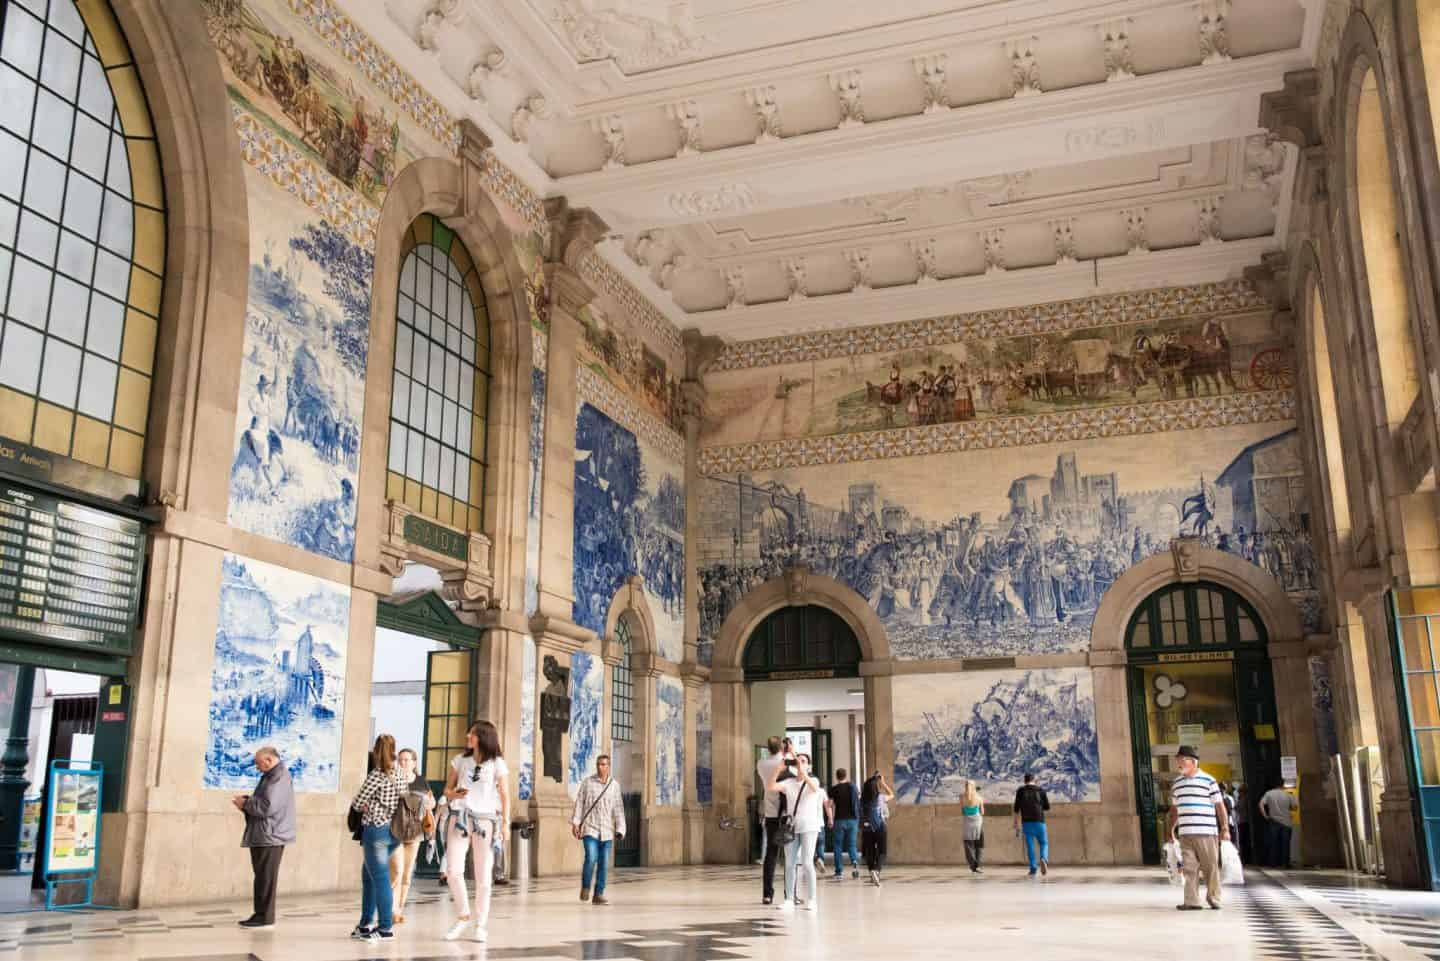 São Bento railway station - GROUP TRAVEL | 10 things To Expect From An Intrepid Travel Tour